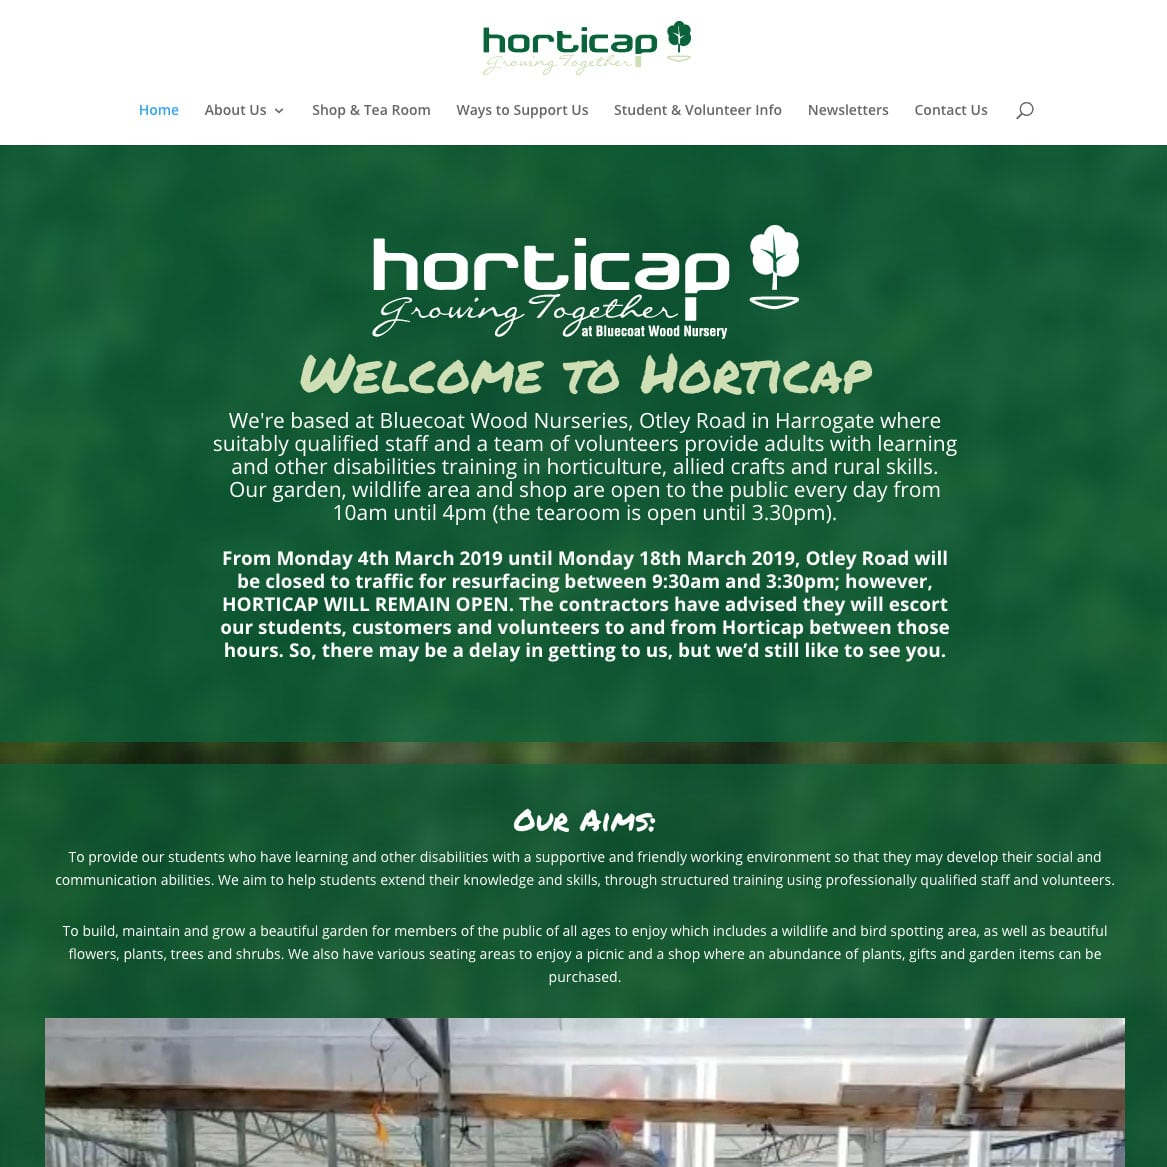 Horticap Website - Colour It In